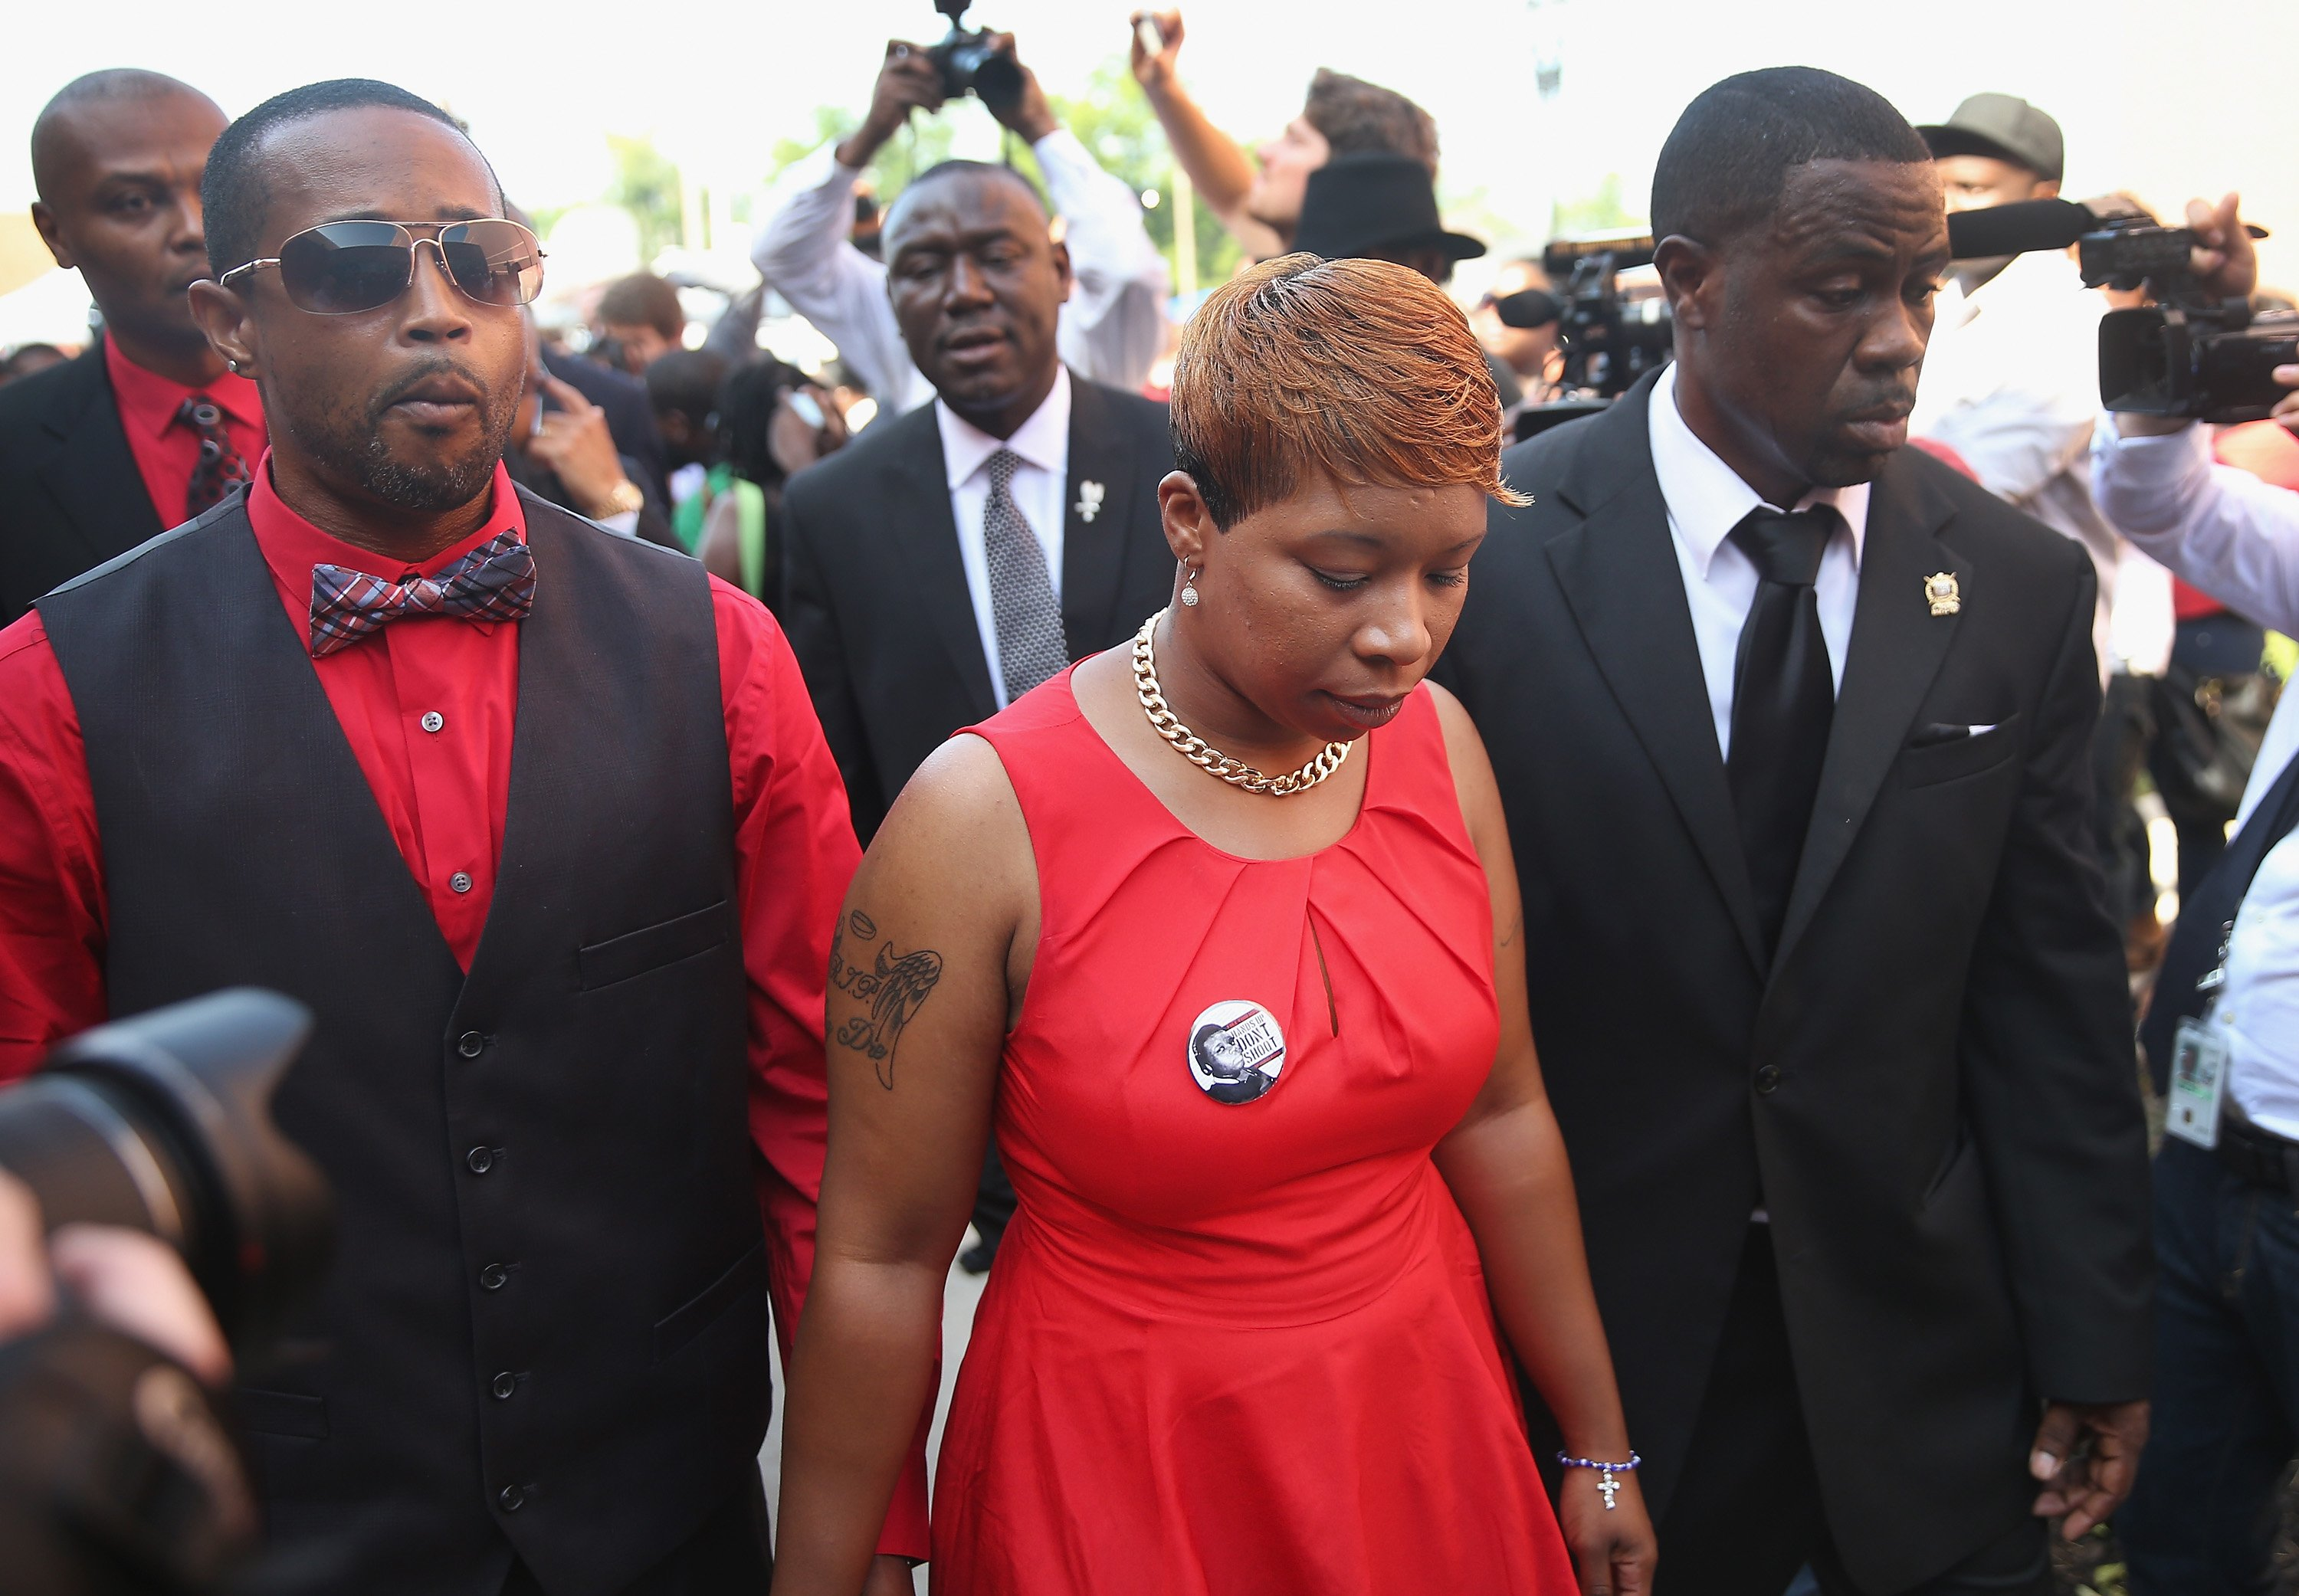 Lesley McSpadden (C) arrives for funeral of her son Michael Brown at the Friendly Temple Missionary Baptist Church in St. Louis on Aug. 25, 2014.